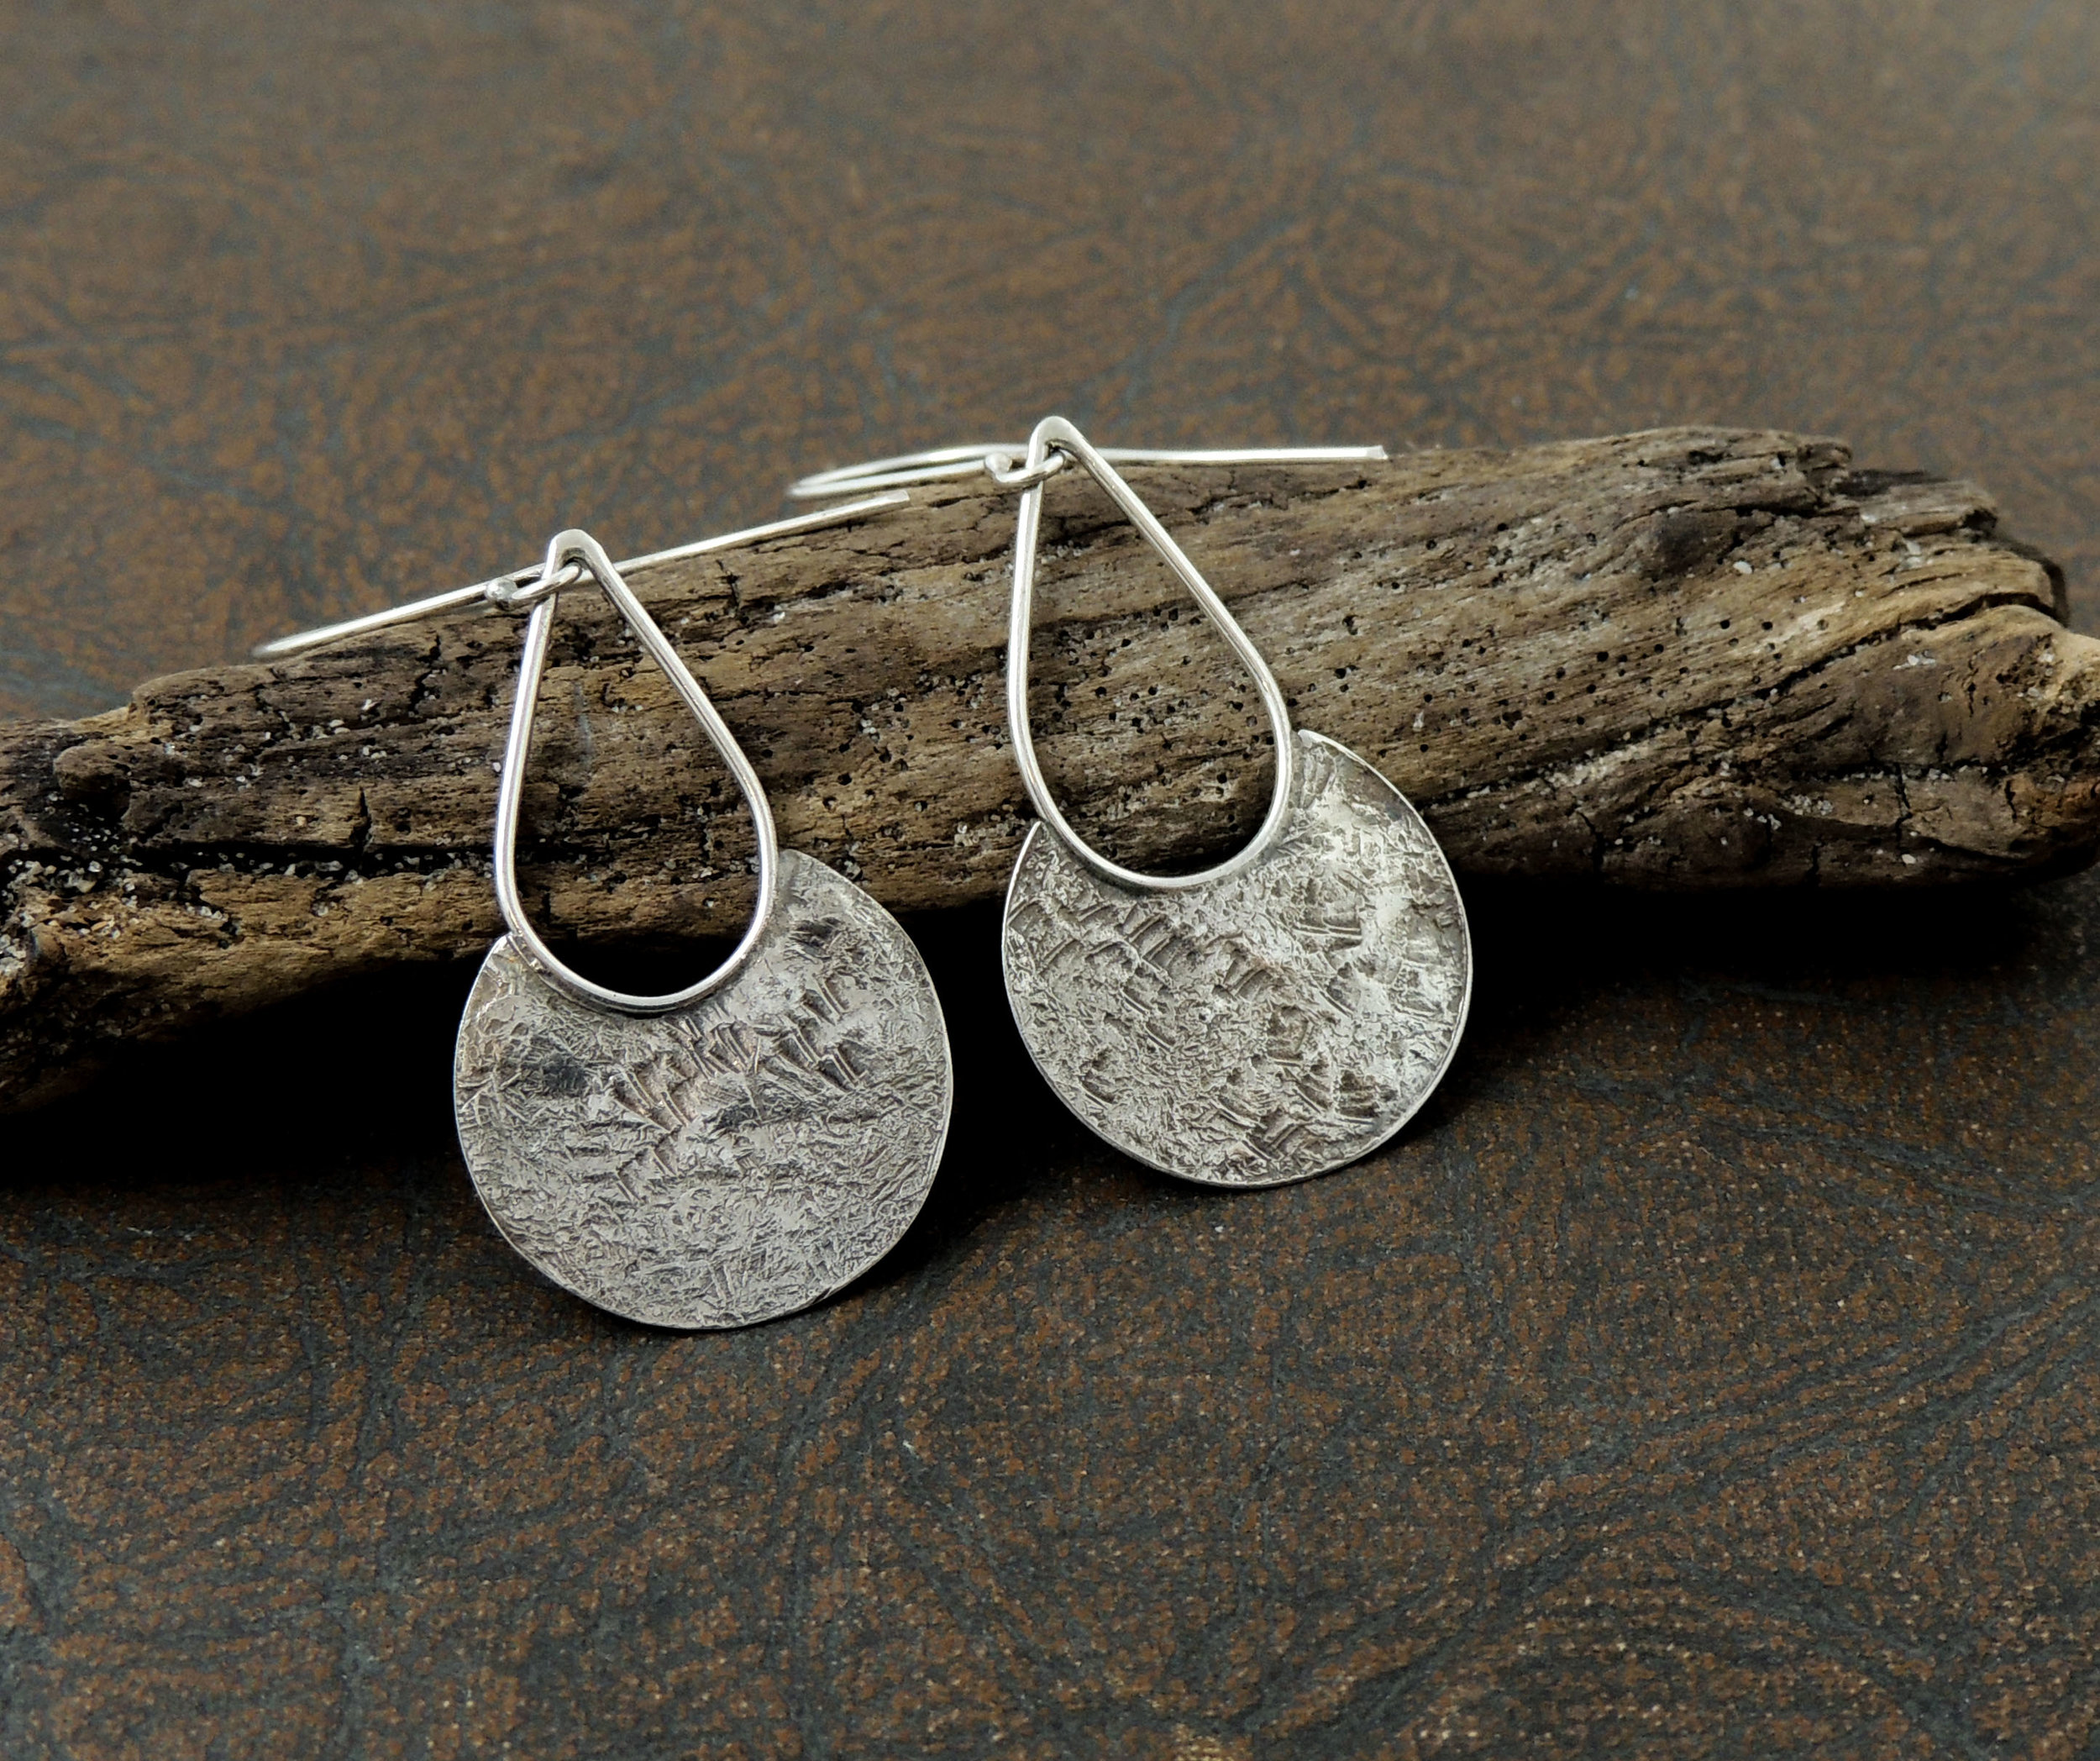 Very nice earrings! These are attractive and easy to wear. They have enough character to wear alone but will also compliment other pieces.  -Christine K